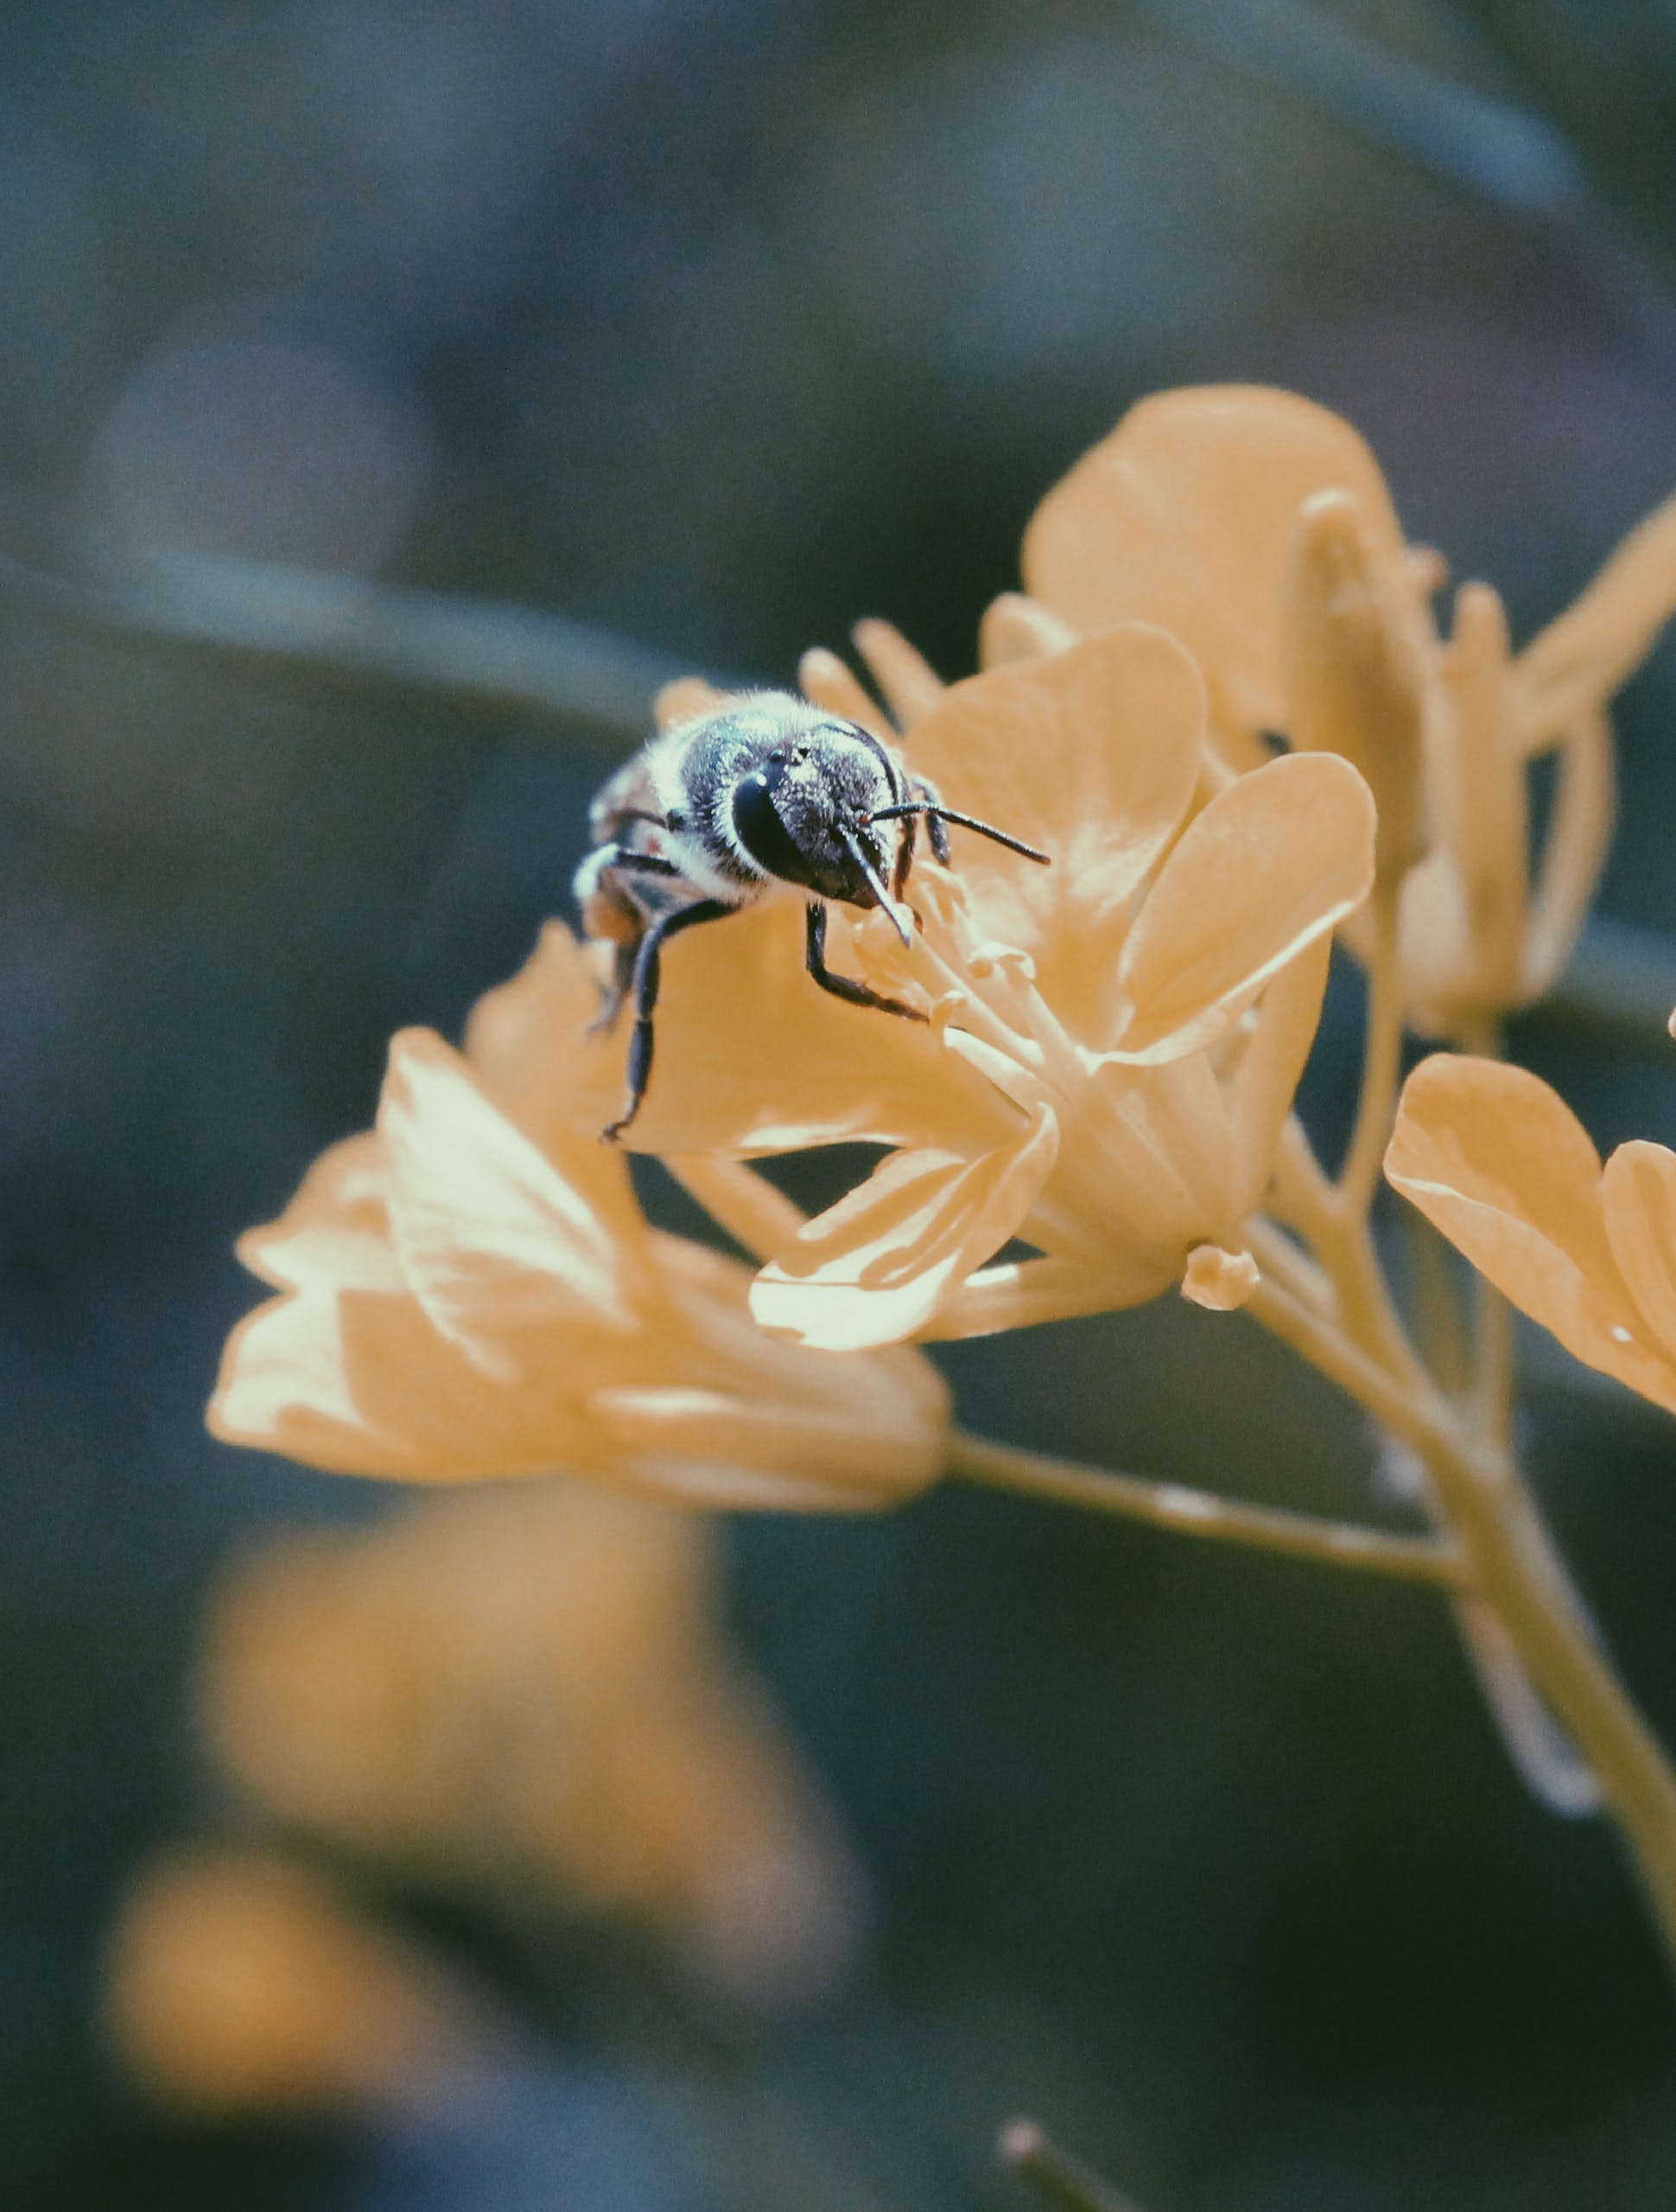 Black and Brown Honey Bee on White Flower